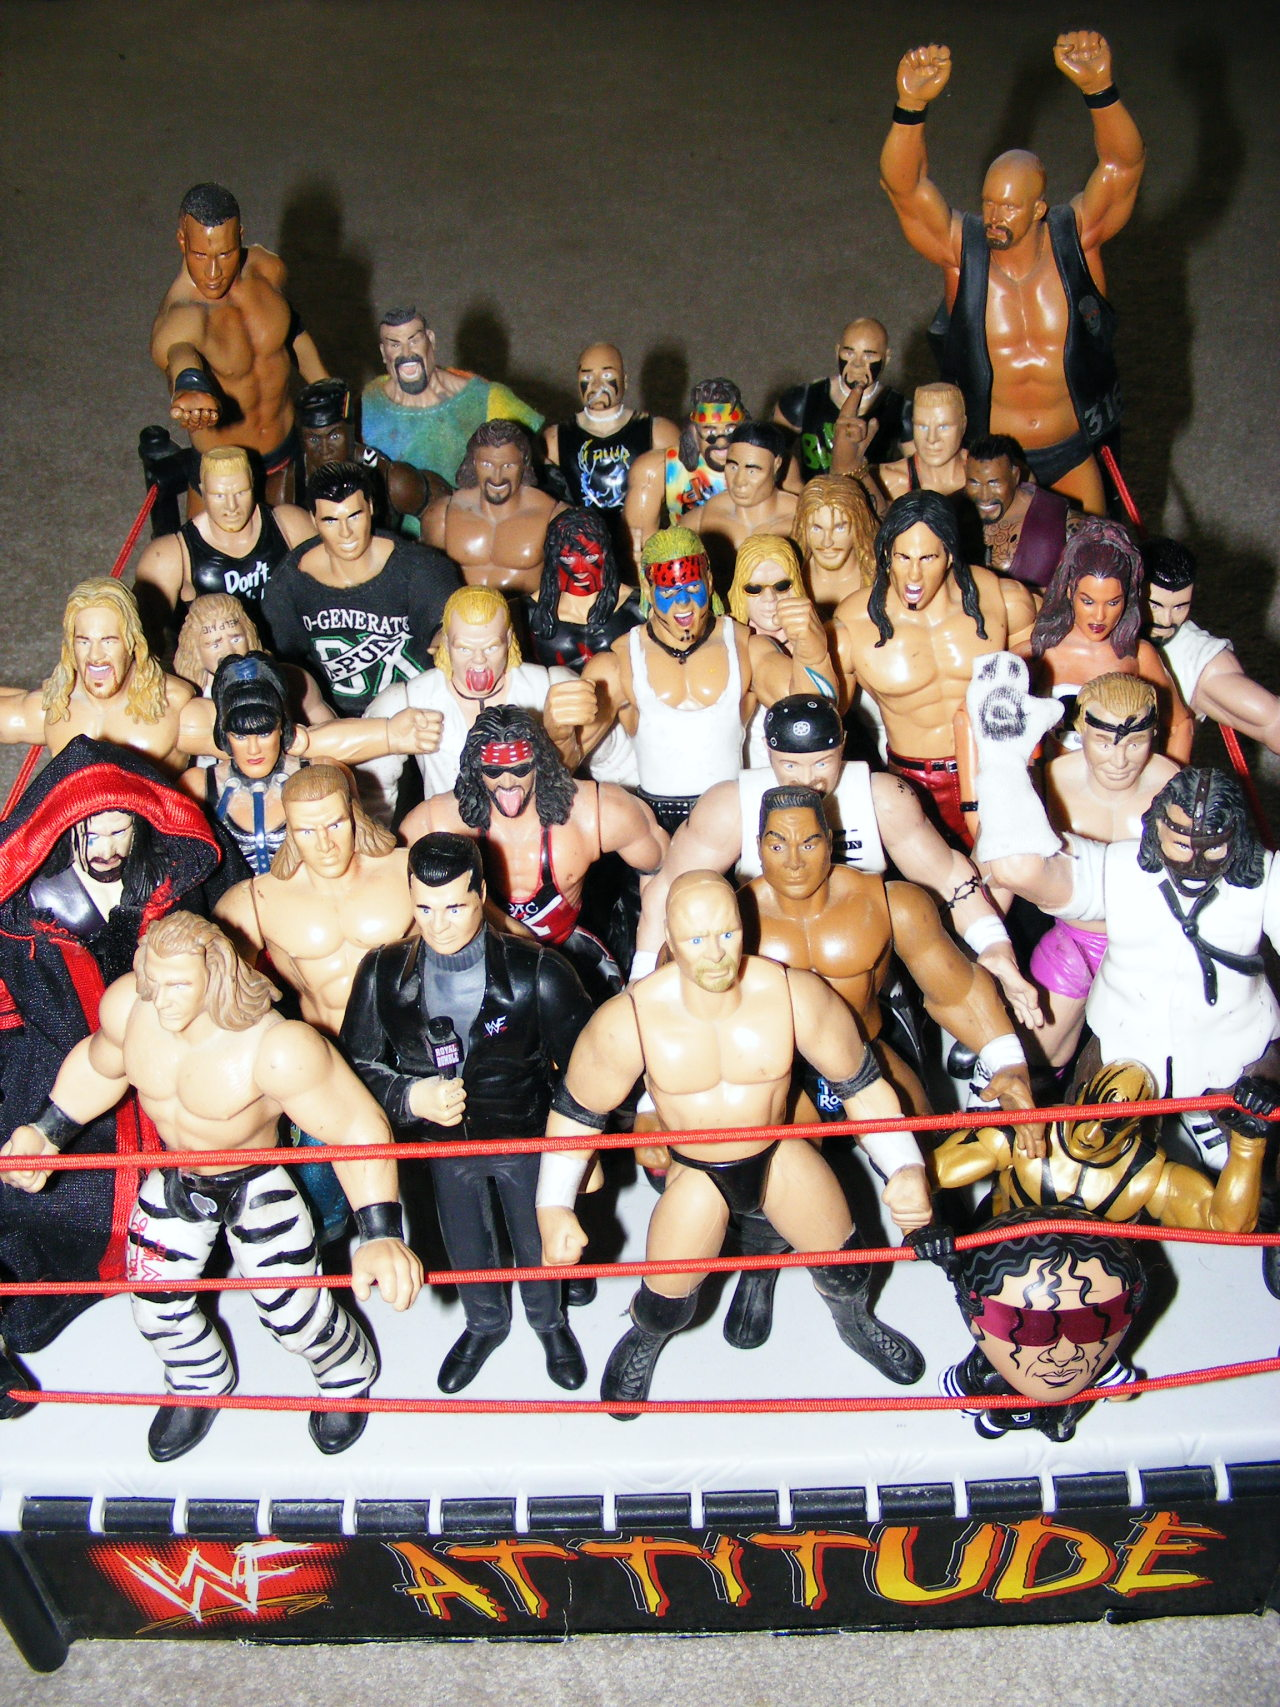 The WWF Attitude Era This is by no means my entire collection. Just a random selection of figures that I have that represent the Attitude era. Missing are Sable and Sunny. My Sunny figure was MIA (just found it an hour ago) and the Sable figure was getting her arm glued back on. For some reason, a lot of the Jakks figures were real assholes about losing limbs. Many a fun time was had for this chubby, chili-bowled figure booker alongside this roster of Bone Crunching Action warriors. I'd have entire PPV line-ups set for my figures, with ridiculous names for the shows like WWF Revenge and WWF Stable Wars. But, then again, Bragging Rights and Capitol Punishment weren't exactly demiurgic.